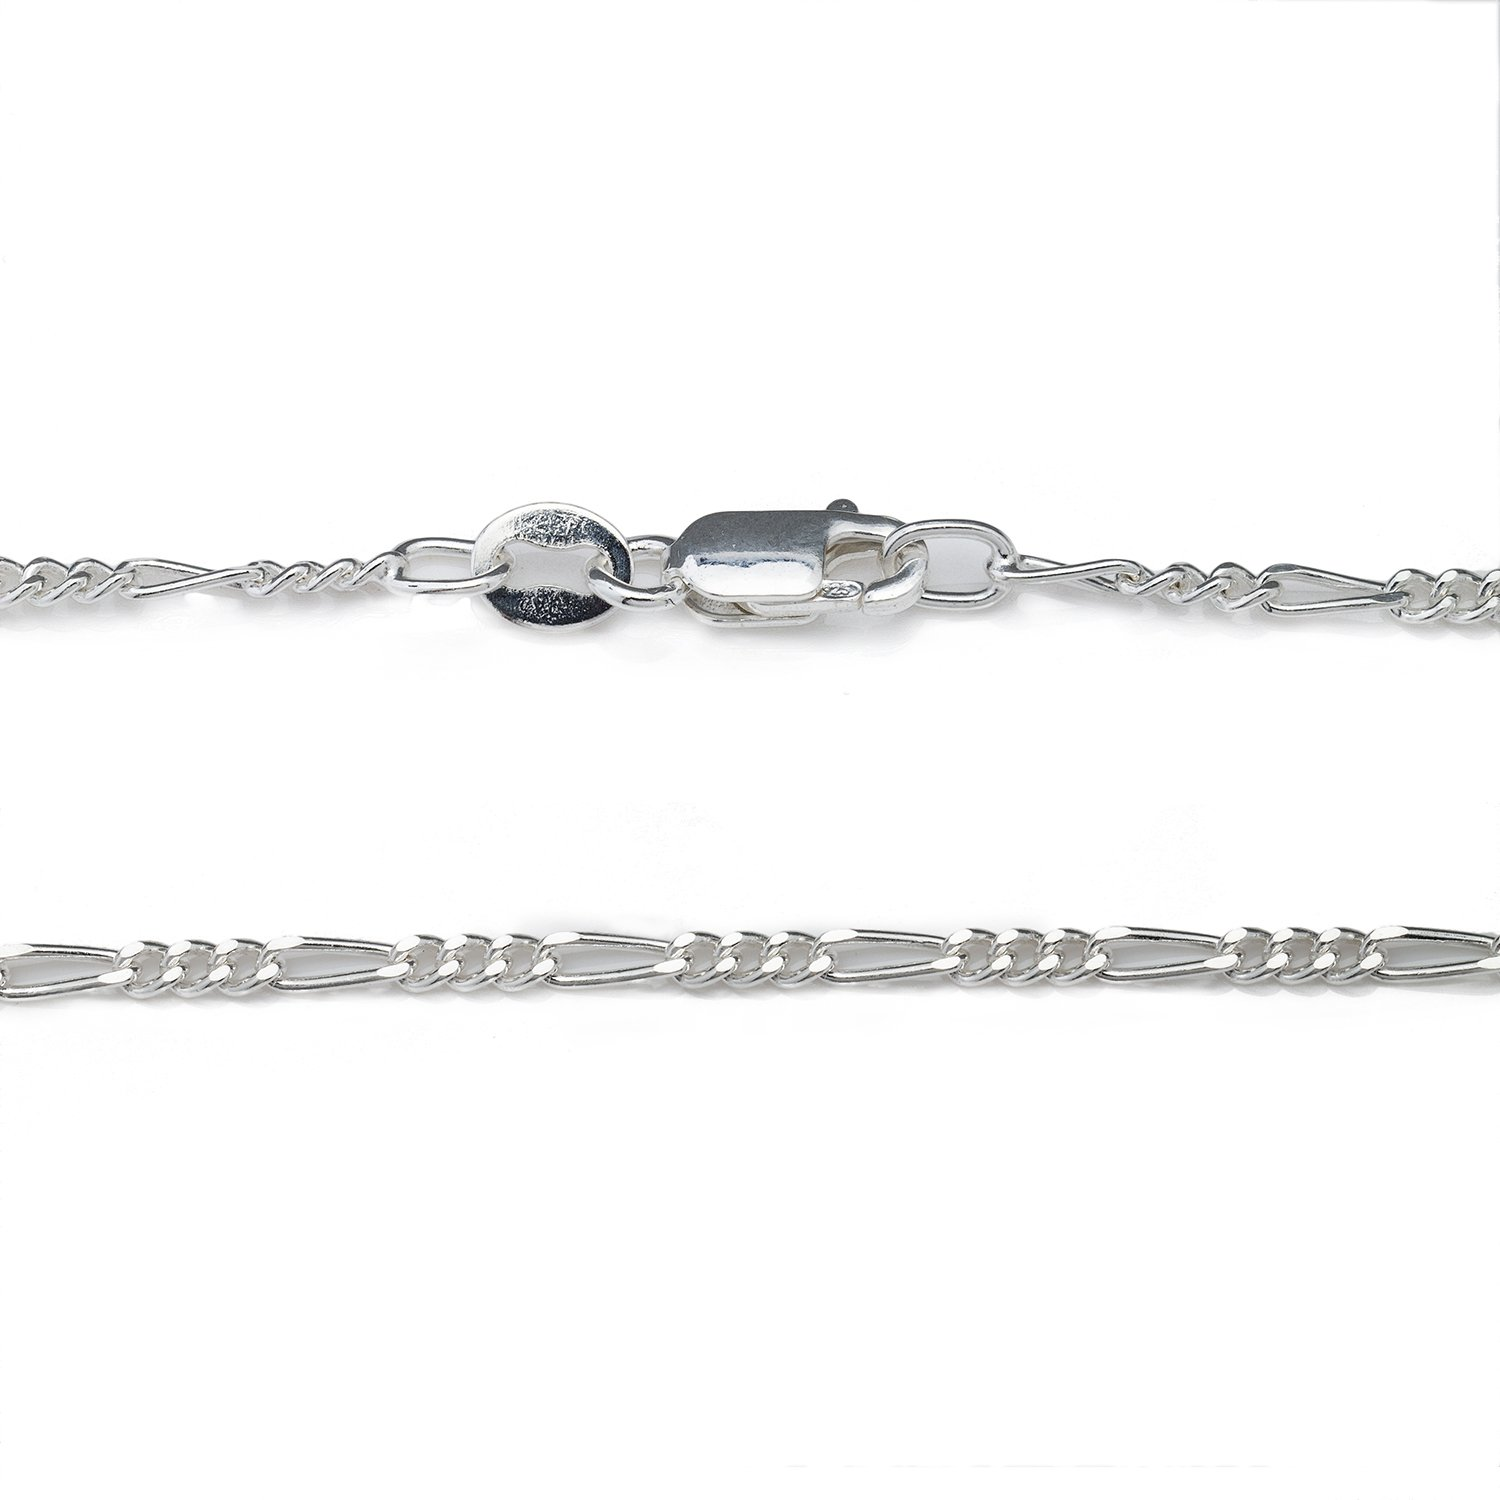 925 Sterling Silver 1.8MM Figaro Chain - Italian Necklace For Women - Lobster Claw Clasp 24 Inch by Designer Sterling Silver (Image #7)